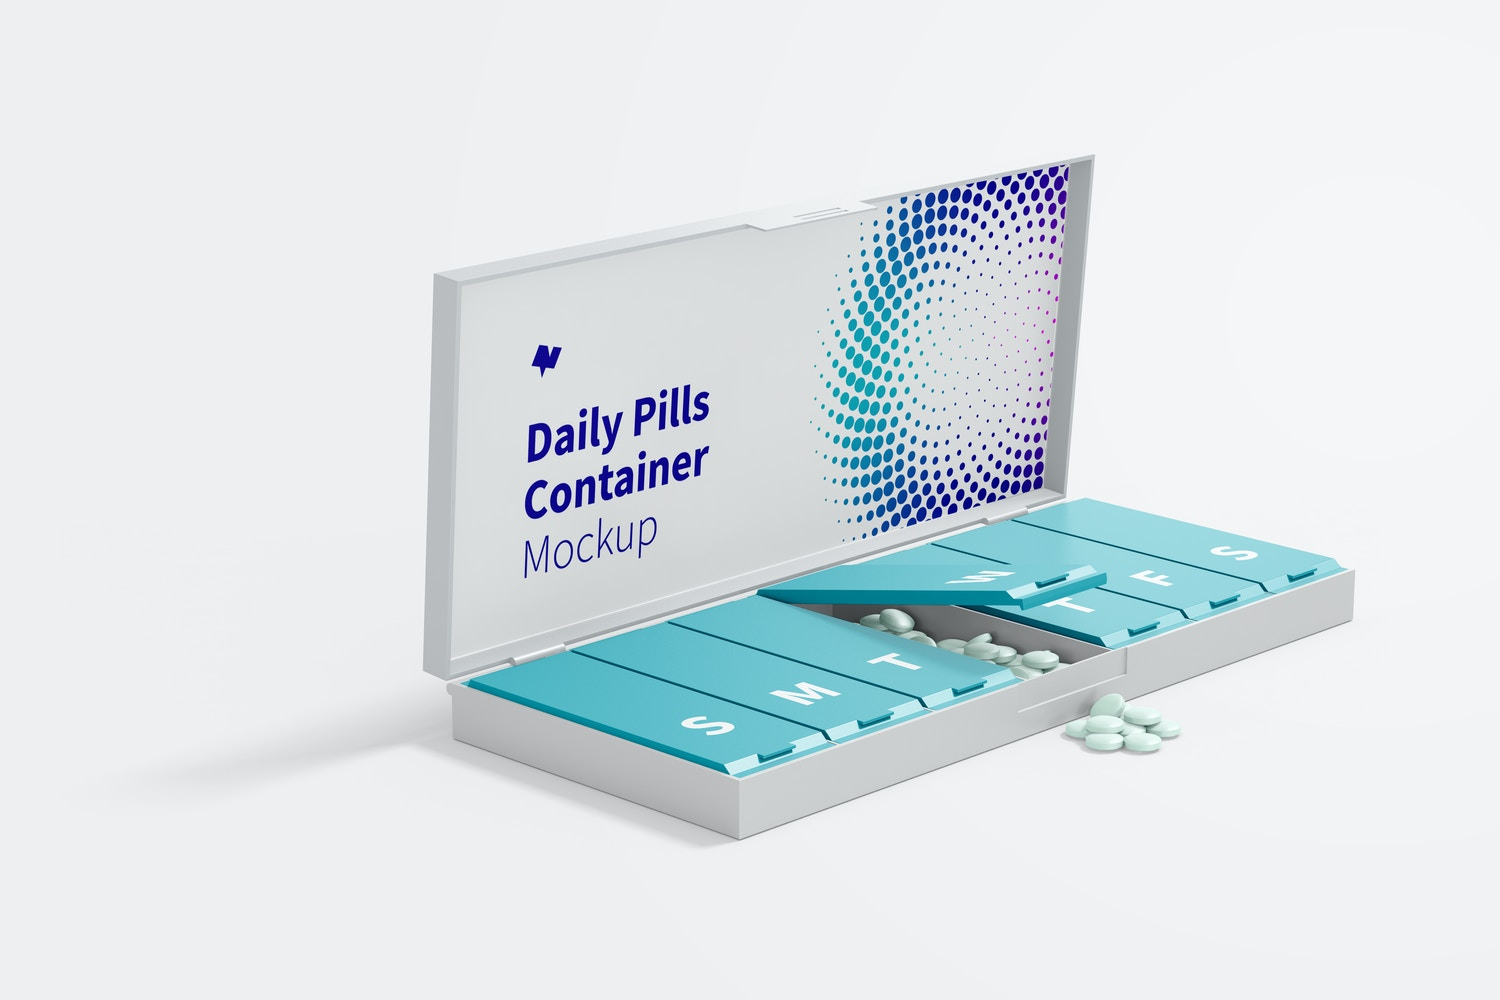 Daily Pills Container Mockup